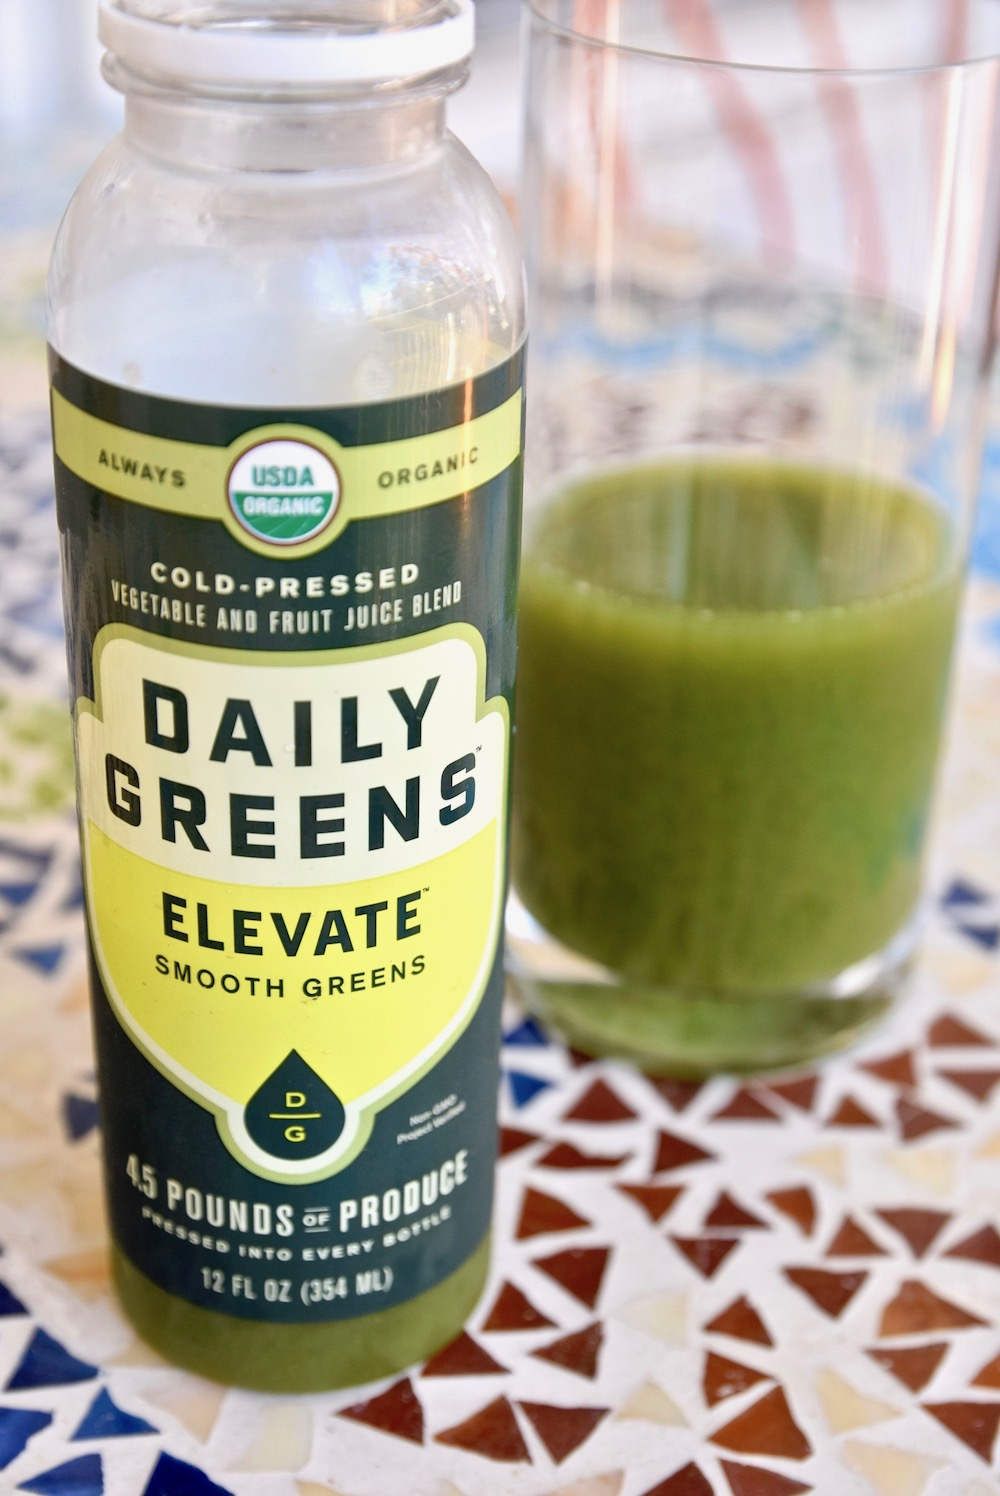 Daily Greens Elevate